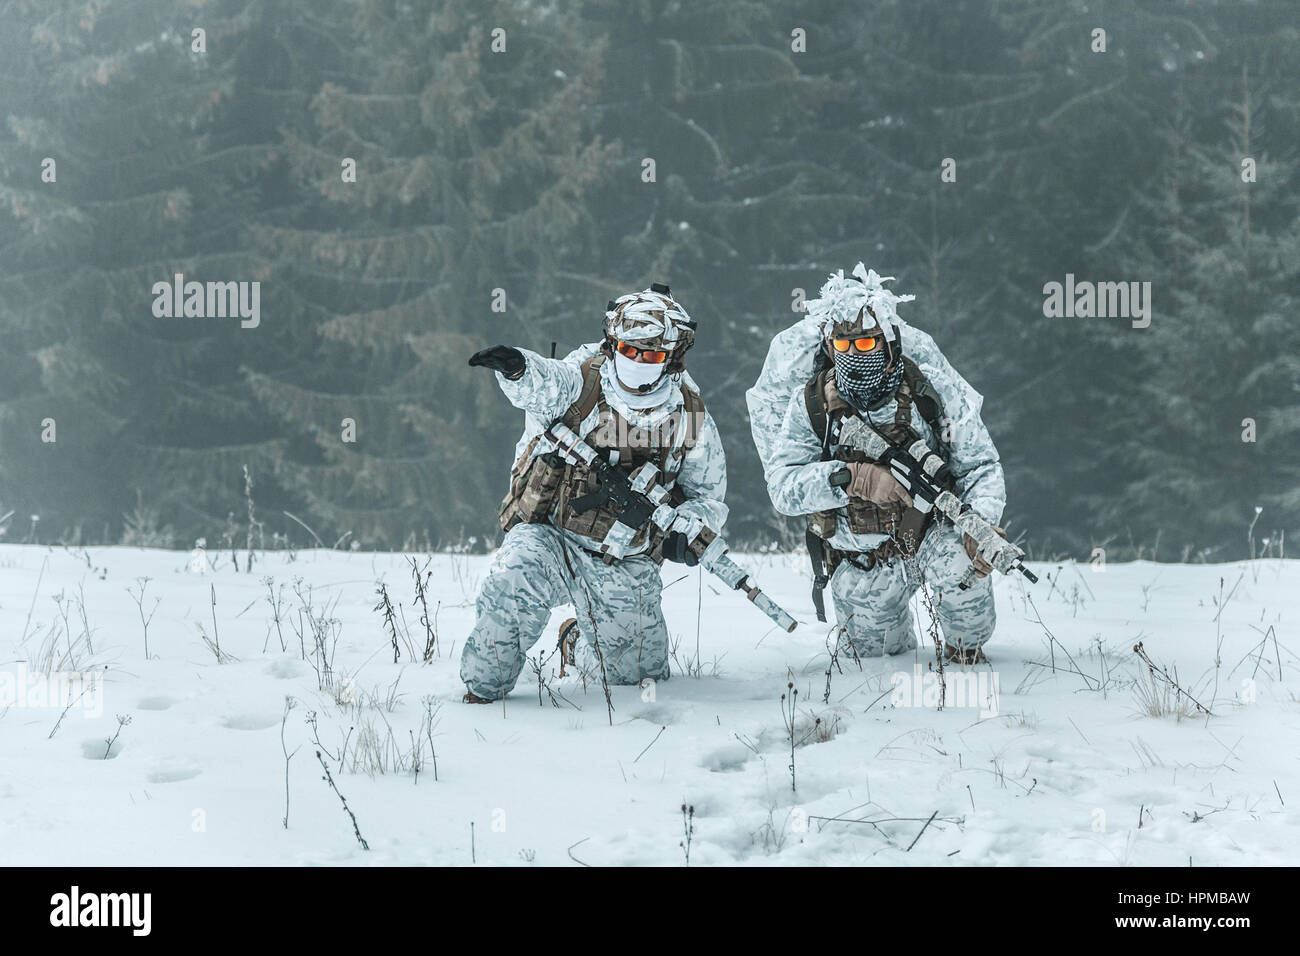 Action above the arctic circle - Stock Image